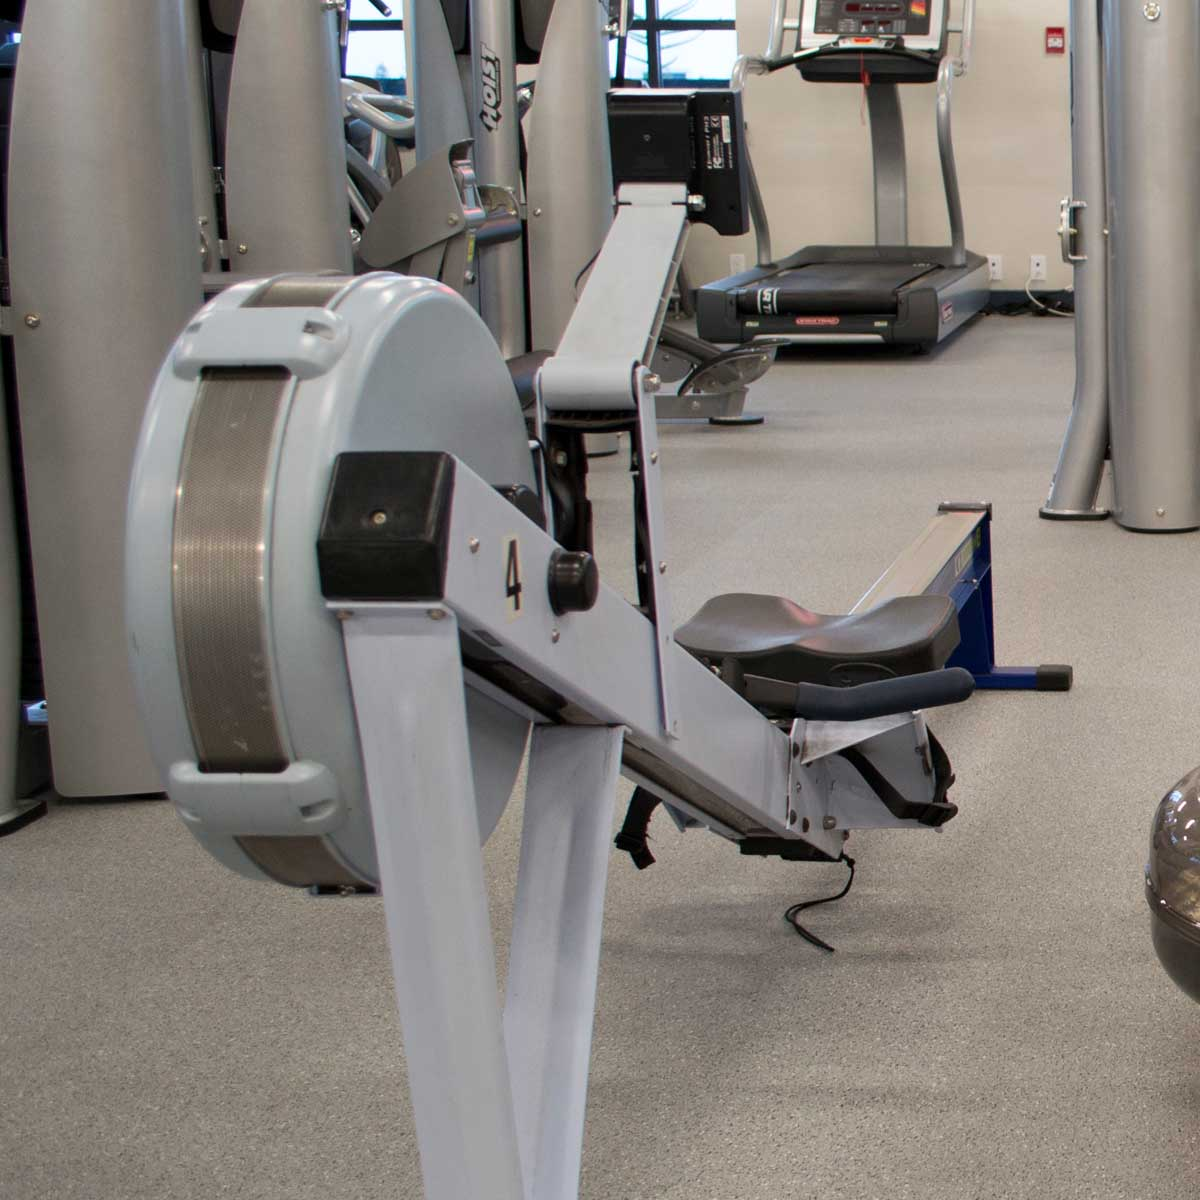 Used Rowing Machines - Fit On Sale